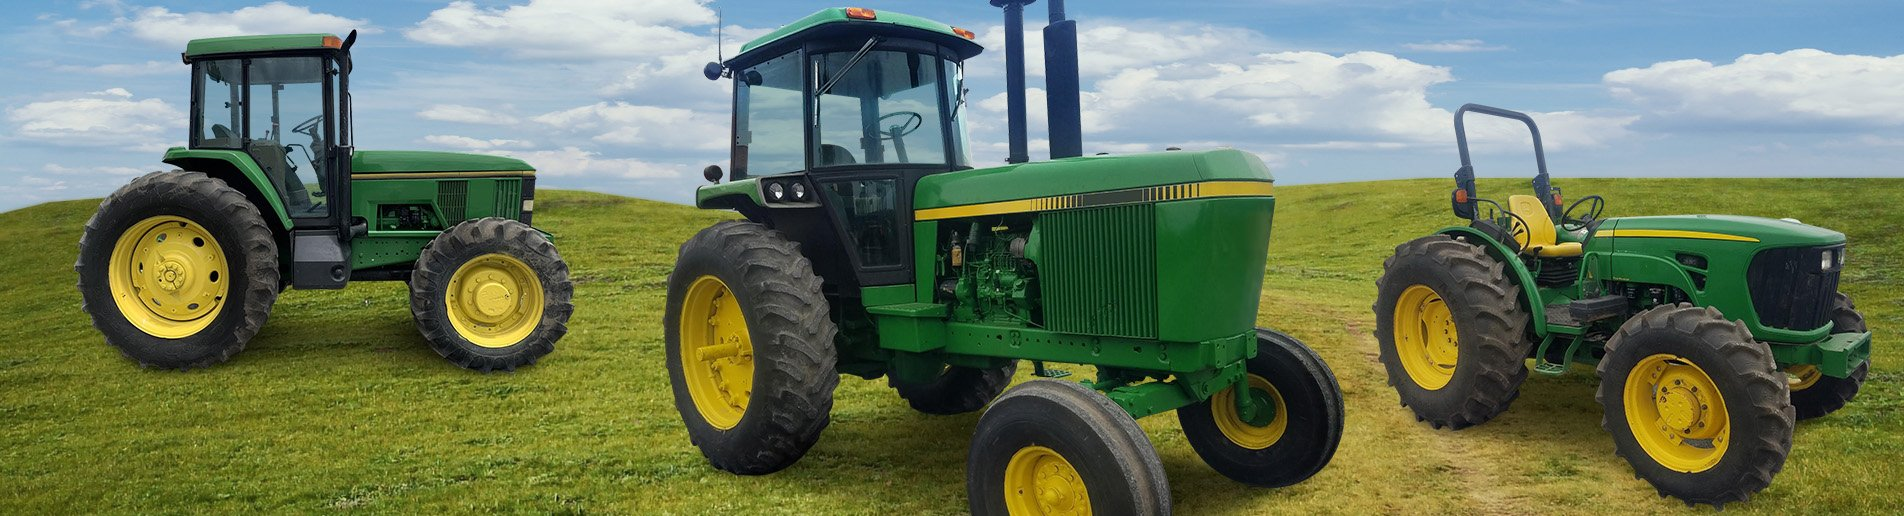 J M Farms Roaring Spring Pa New Or Used Machinery And Agriculture Equipment For Sale